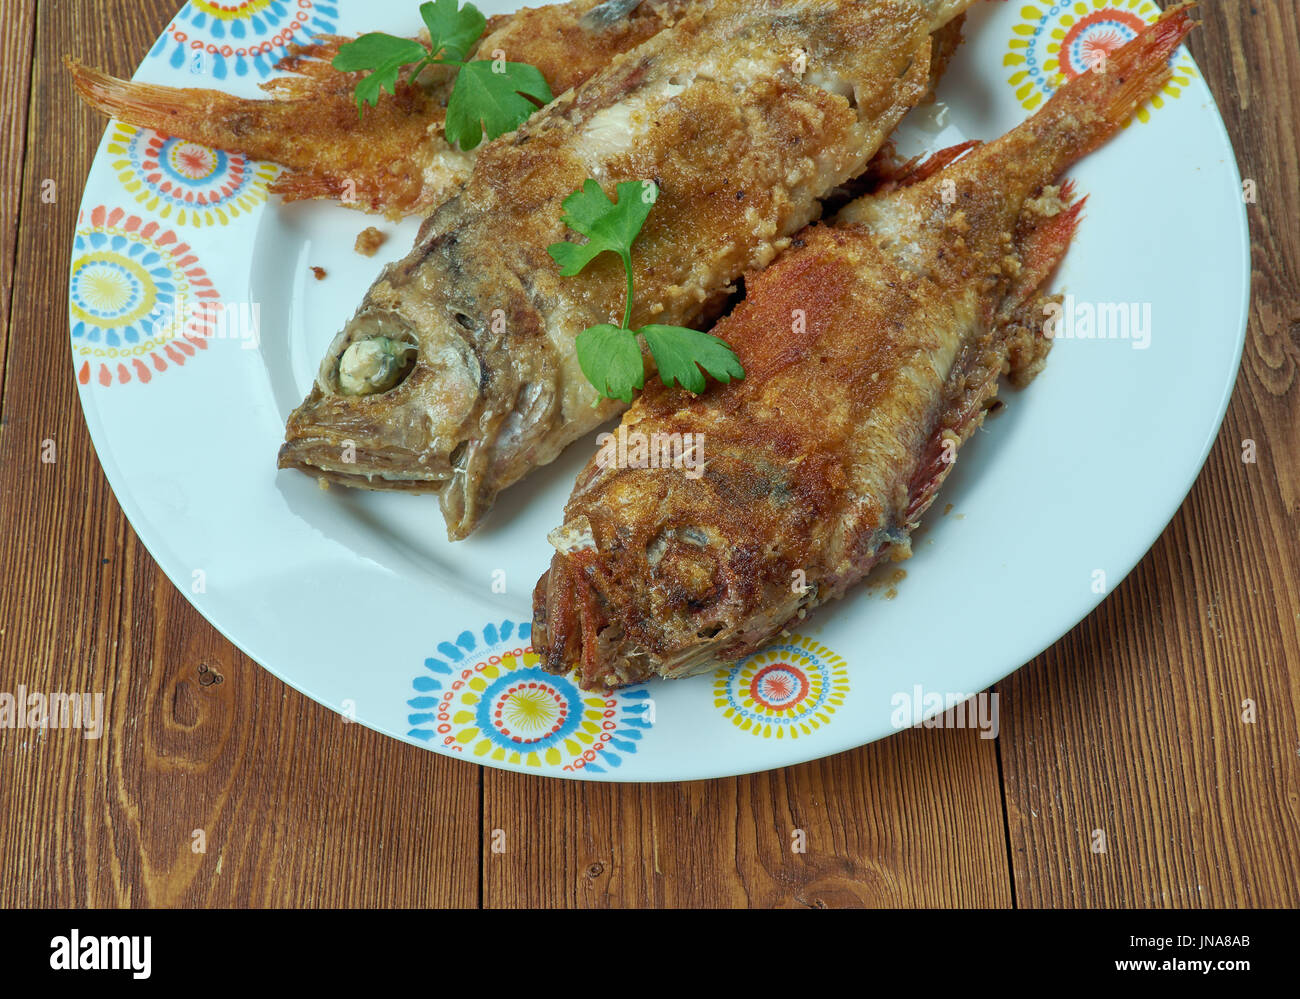 Salmonetes Con Fritura Andaluza Fried In A Frying Pan Fish Spanish Stock Photo Alamy